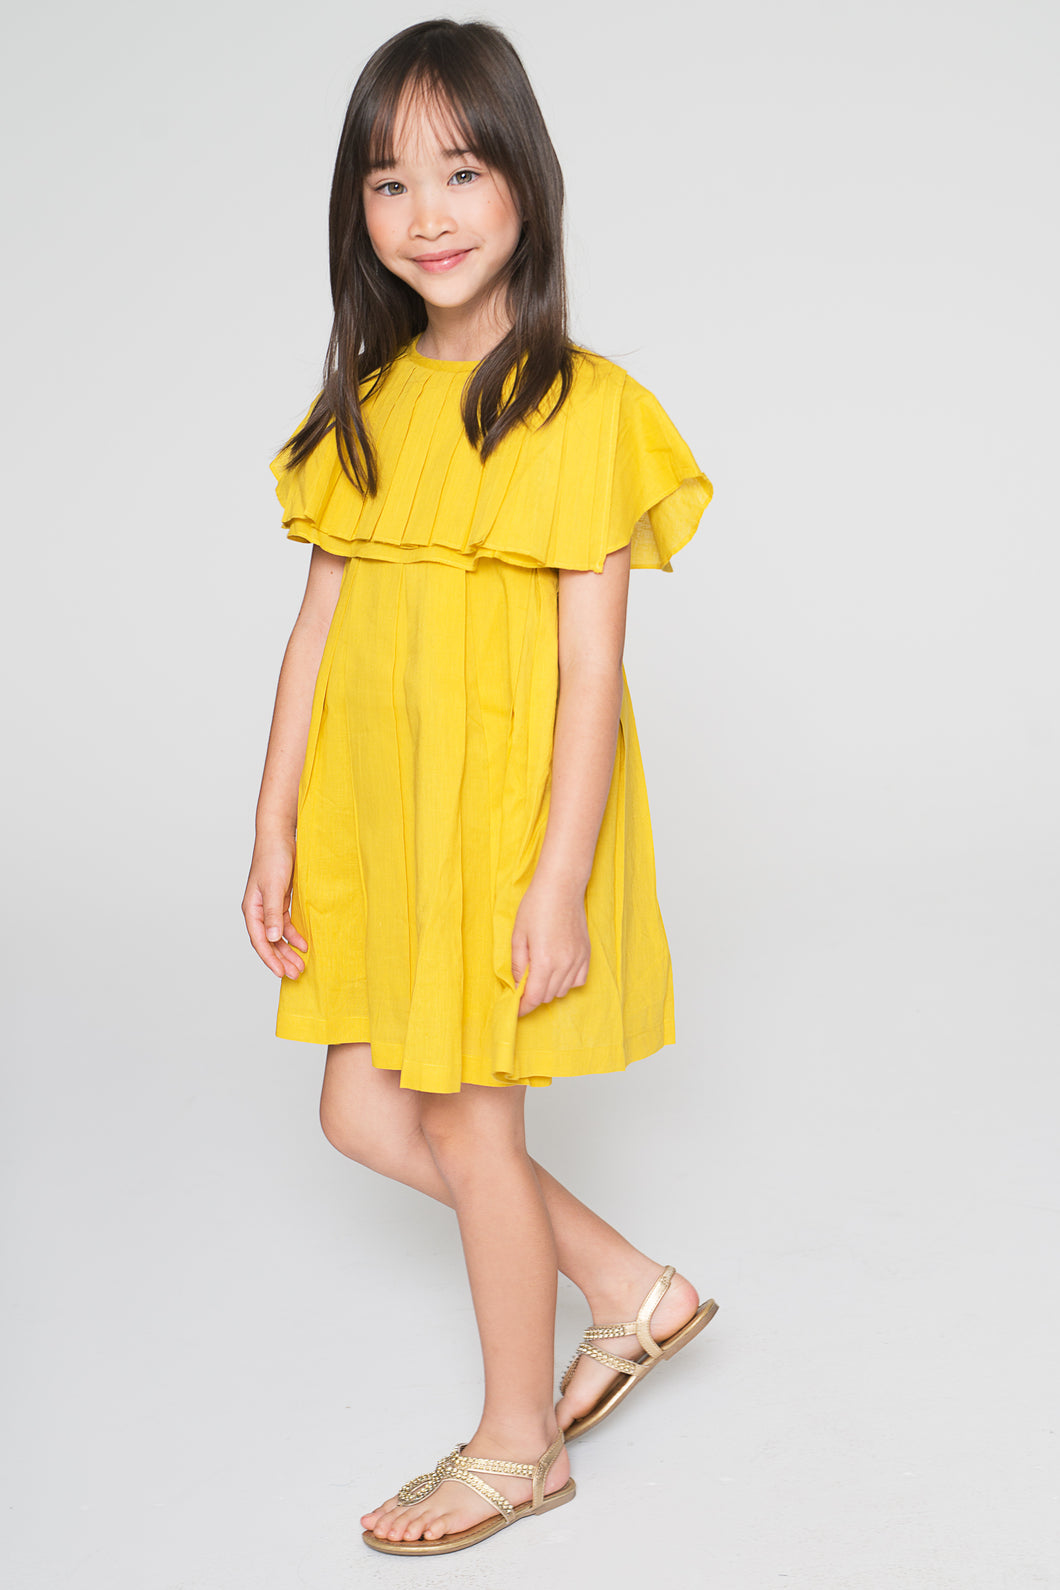 Yellow Flounce Dress - Kids Wholesale Boutique Clothing, Dress - Girls Dresses, Yo Baby Wholesale - Yo Baby